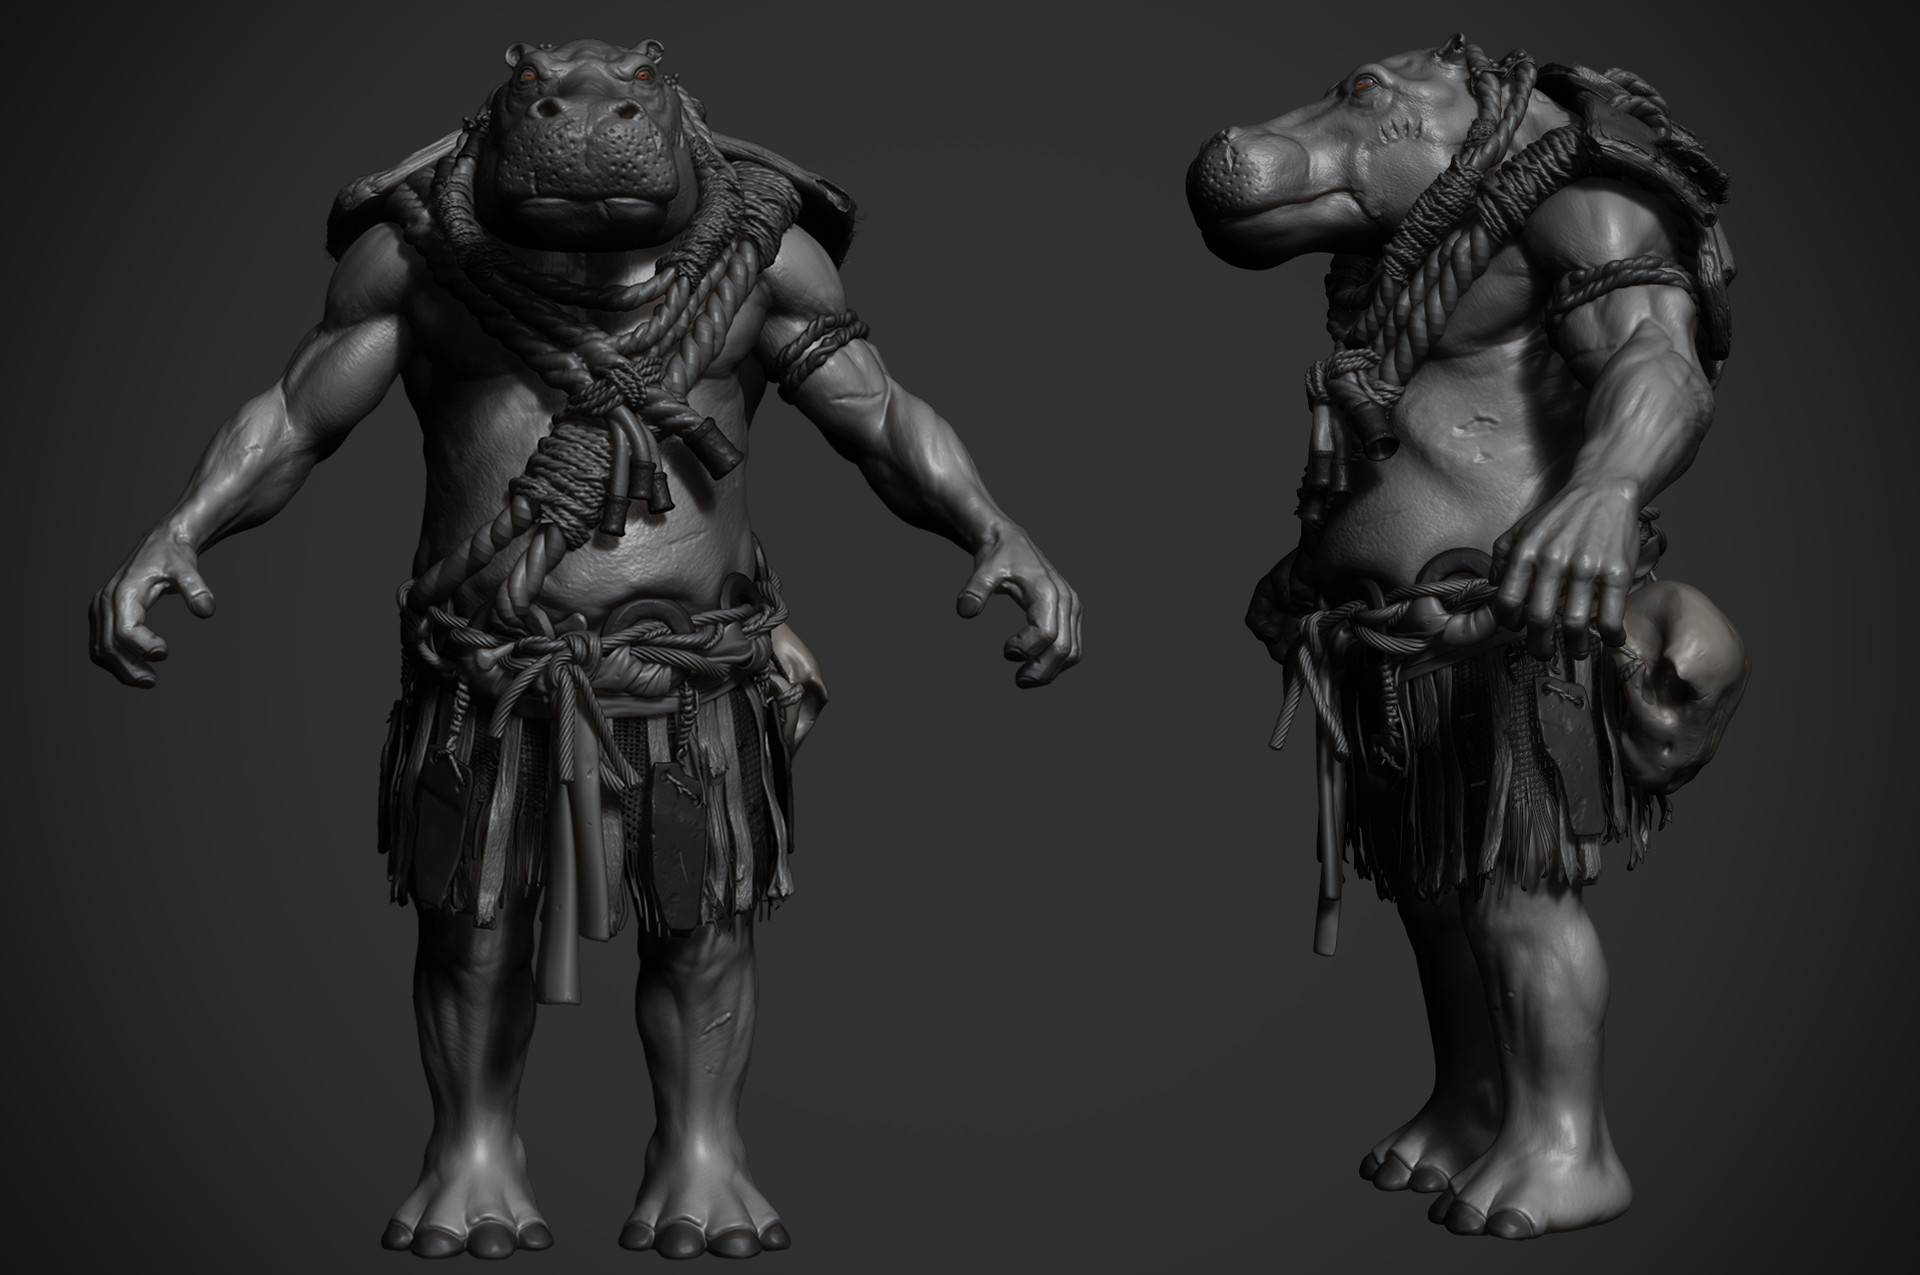 Omar chaouch hippo animal warrior omar chaouch wip 02